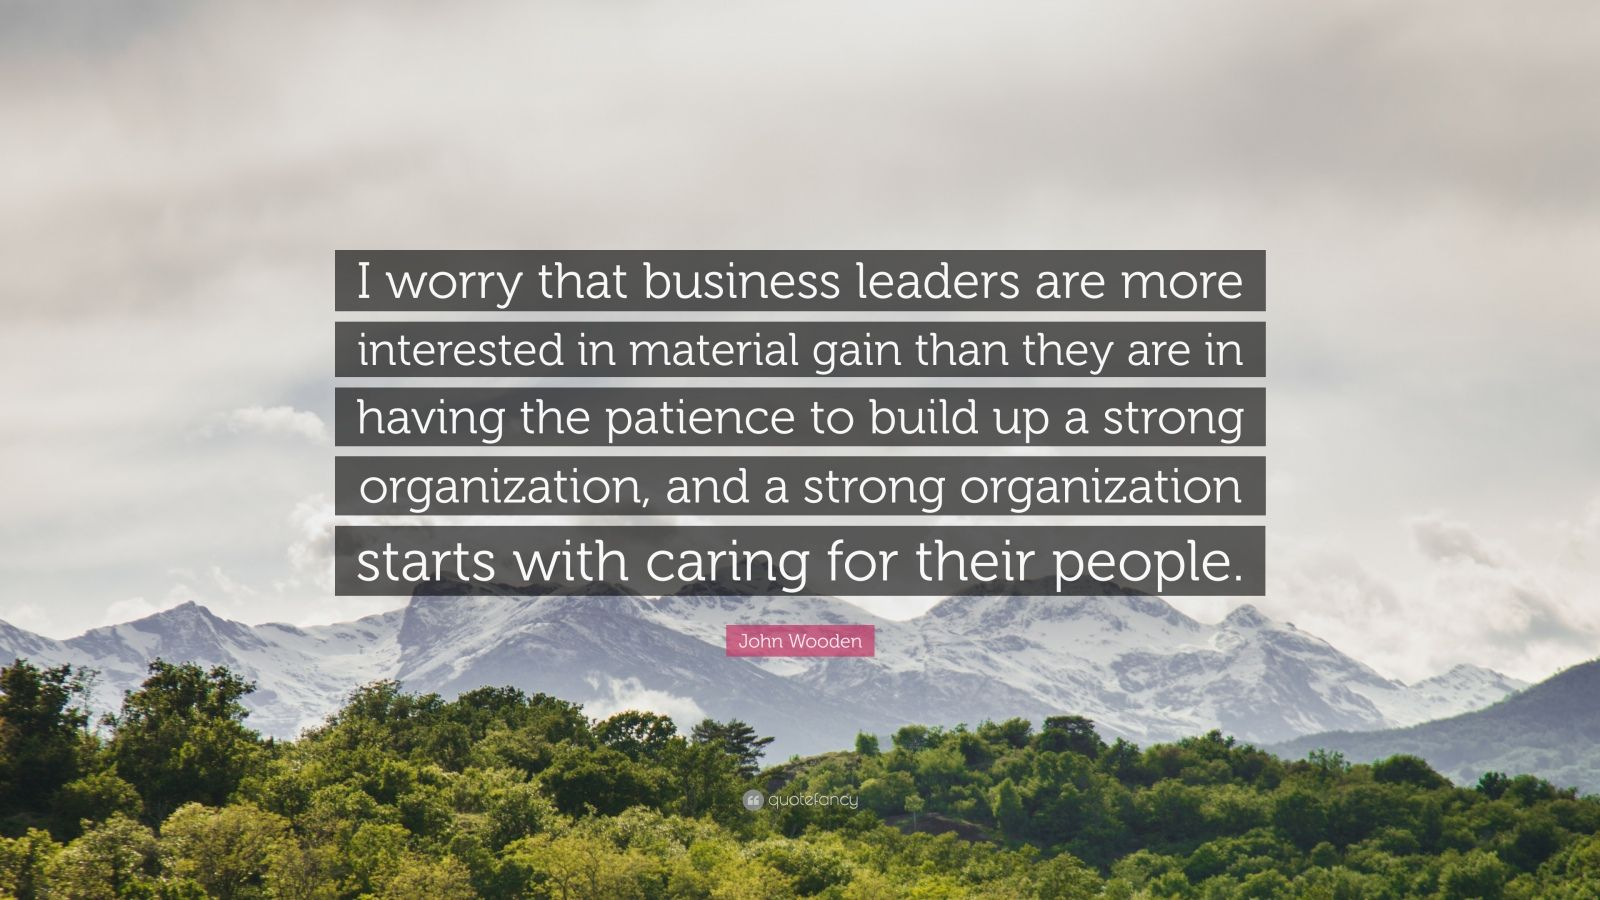 """John Wooden Quote: """"I worry that business leaders are more interested in material gain than they are in having the patience to build up a strong organization, and a strong organization starts with caring for their people."""""""